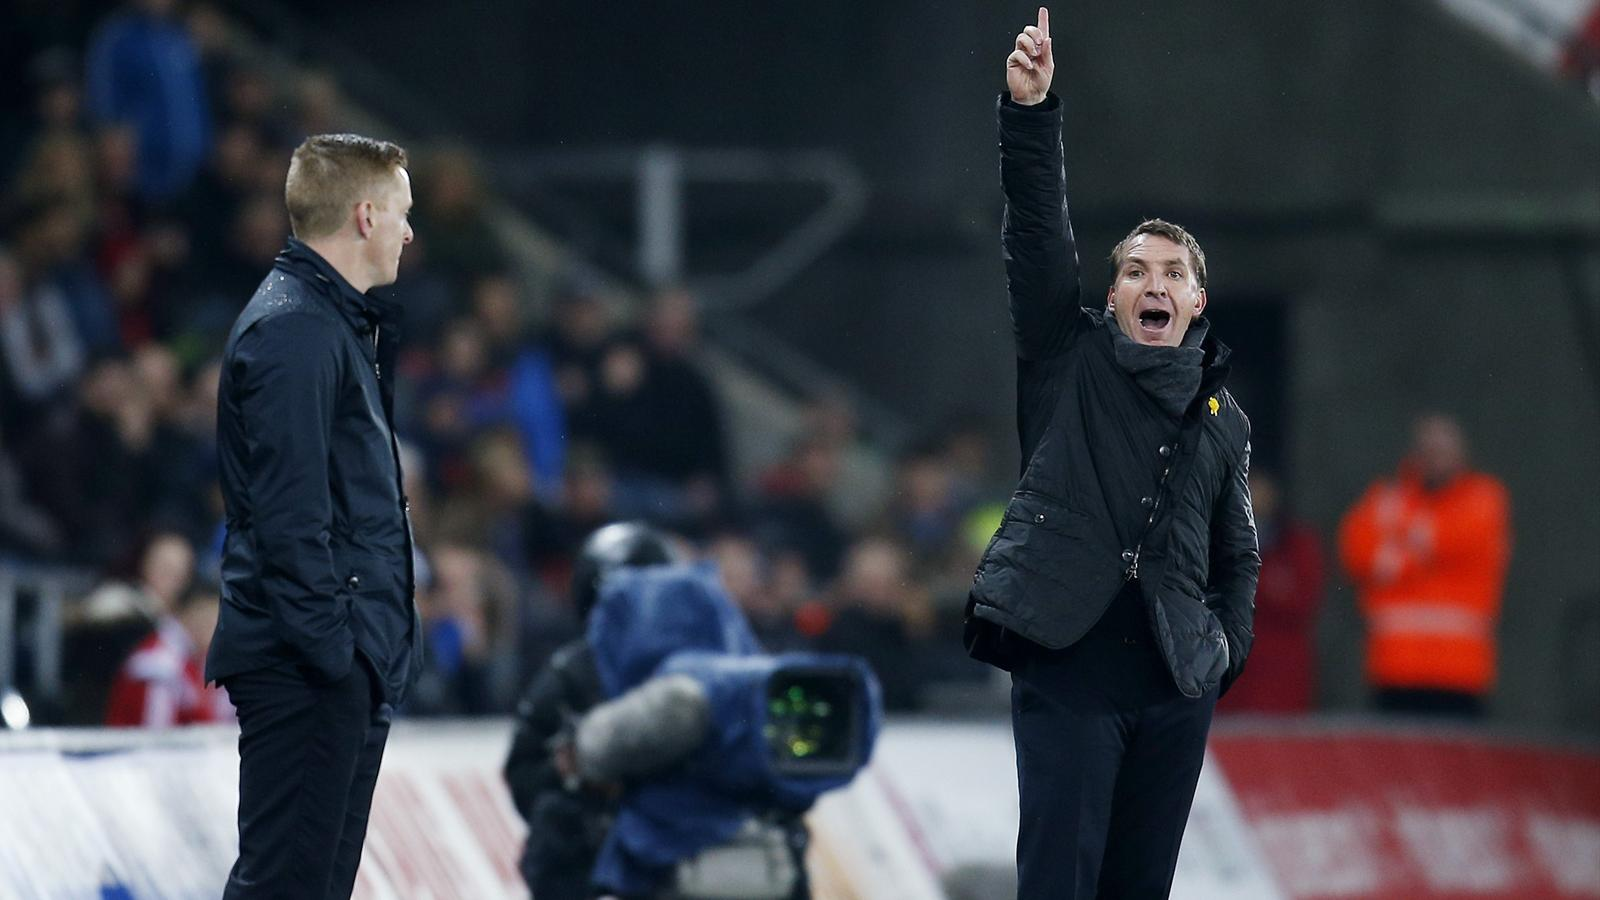 Swansea City boss Garry Monk and Brendan Rodgers while at Liverpool